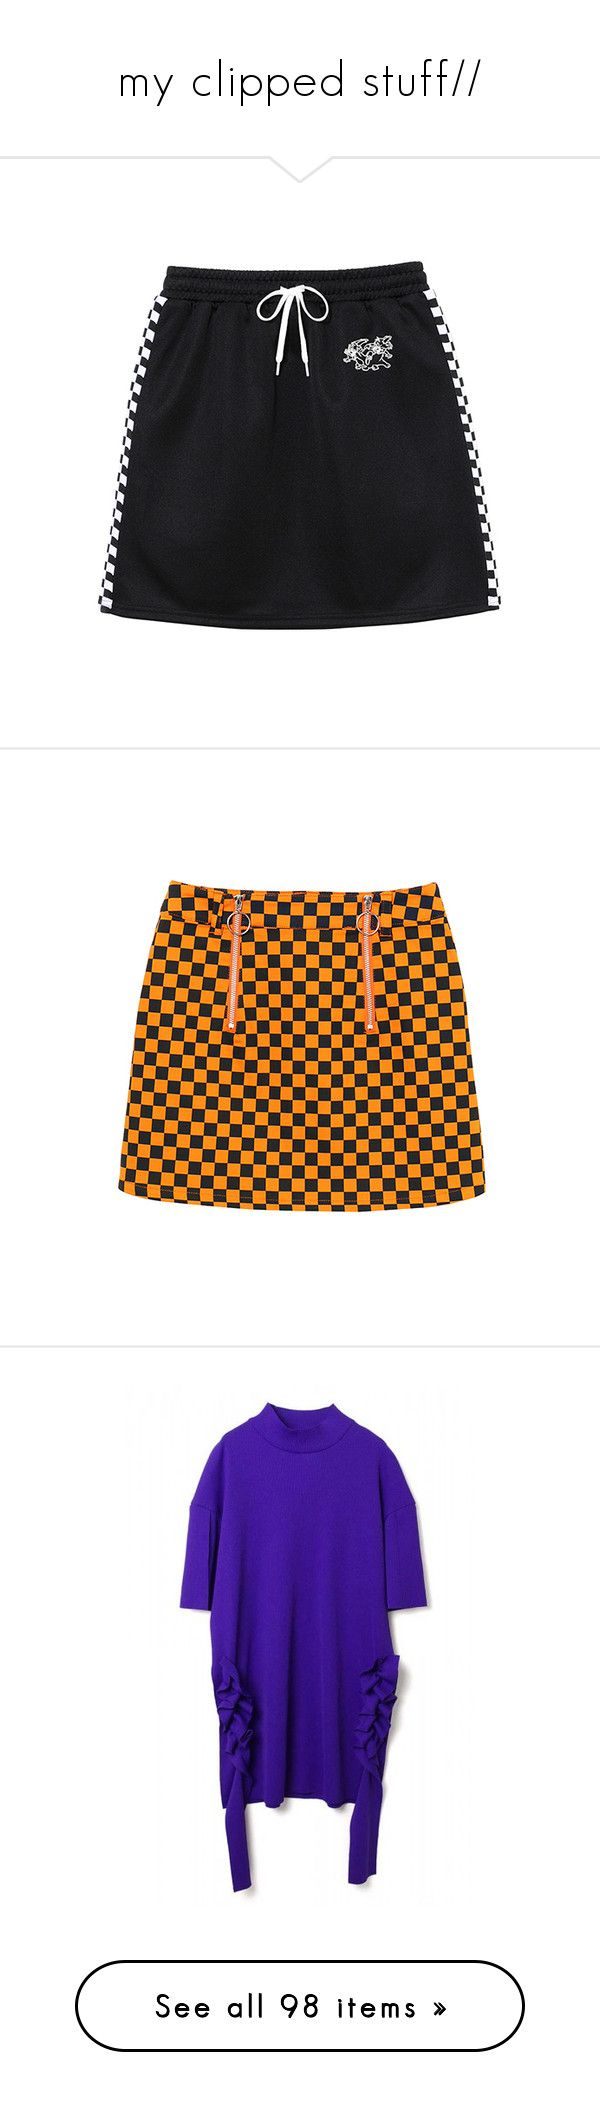 """my clipped stuff//"" by bangtanfashion ❤ liked on Polyvore featuring skirts, puffy skirts, puff skirt, jersey skirt, orange skirts, zip skirt, zipper skirt, tops, t-shirts and faux t shirt"